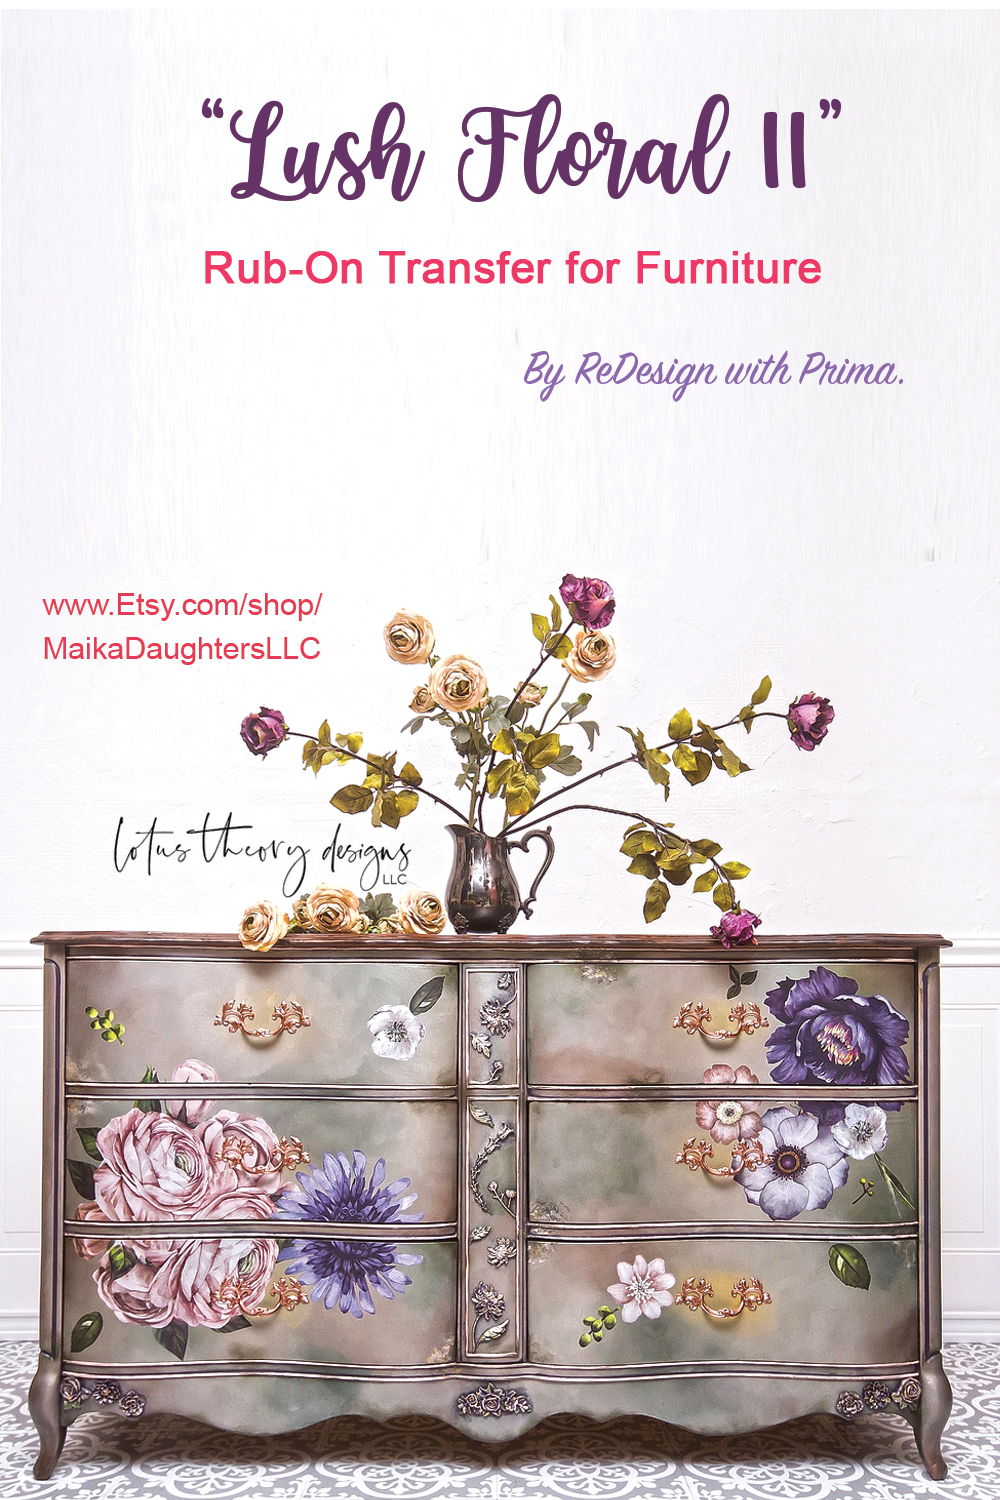 Furniture transfer decal Same Day Shipping! Lush Floral I Decal Transfer by Redesign Decor Prima